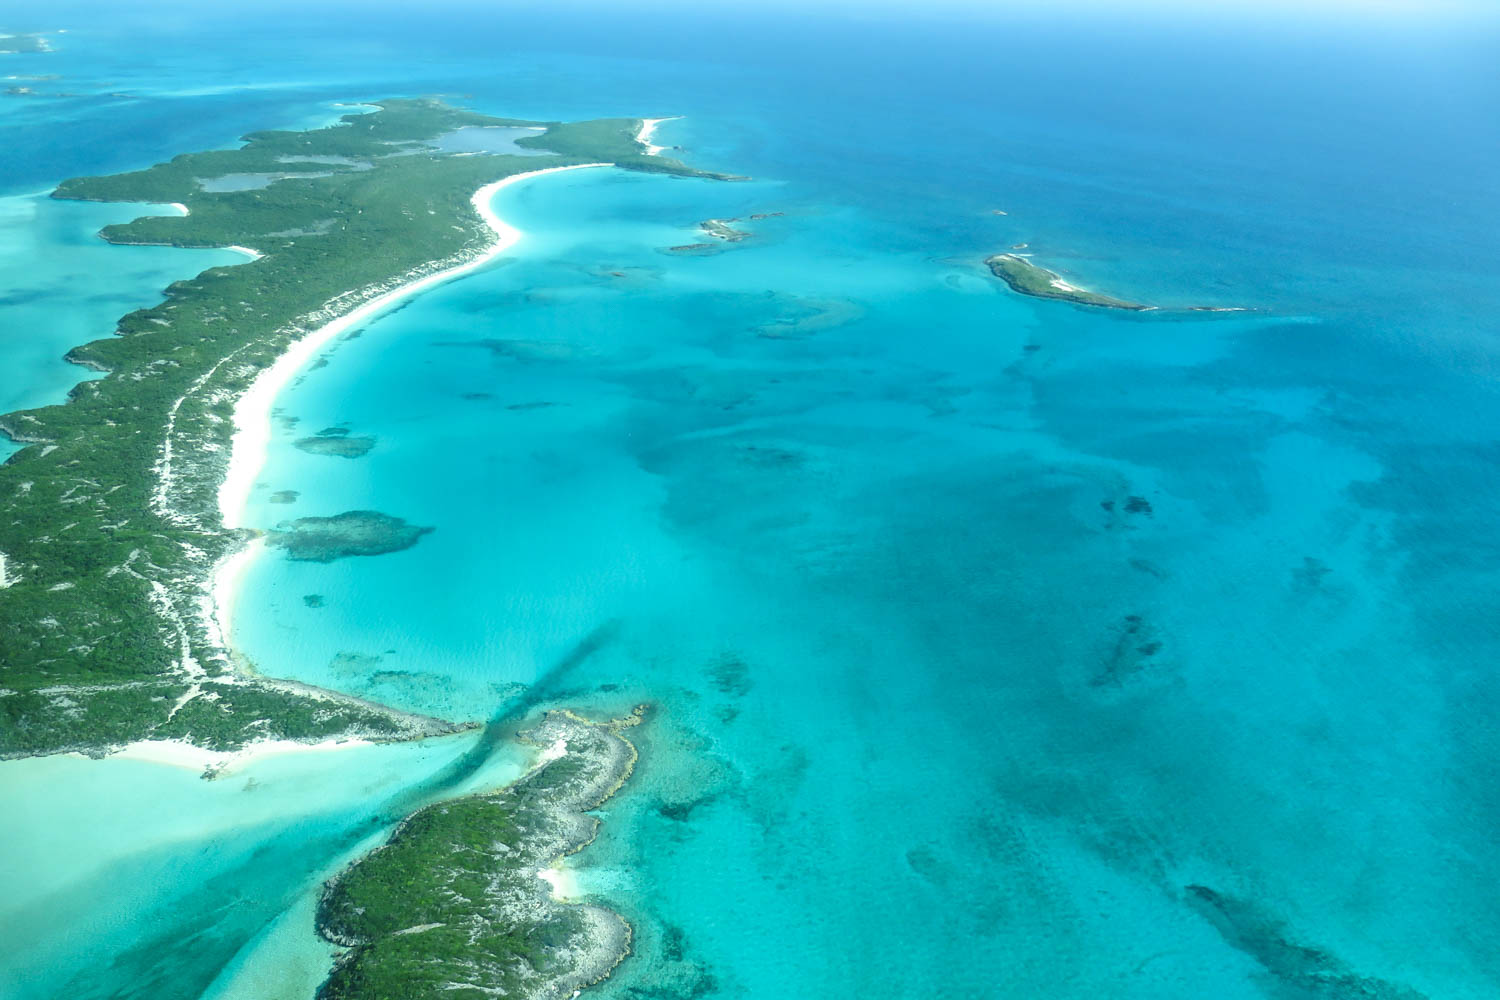 Flights to Big Major Cay Exuma Bahamas. Flying across the stunning views of the Exuma Cays chain of island. Fly from Nassau or Miami direct to Pig BEach Big Major Cay